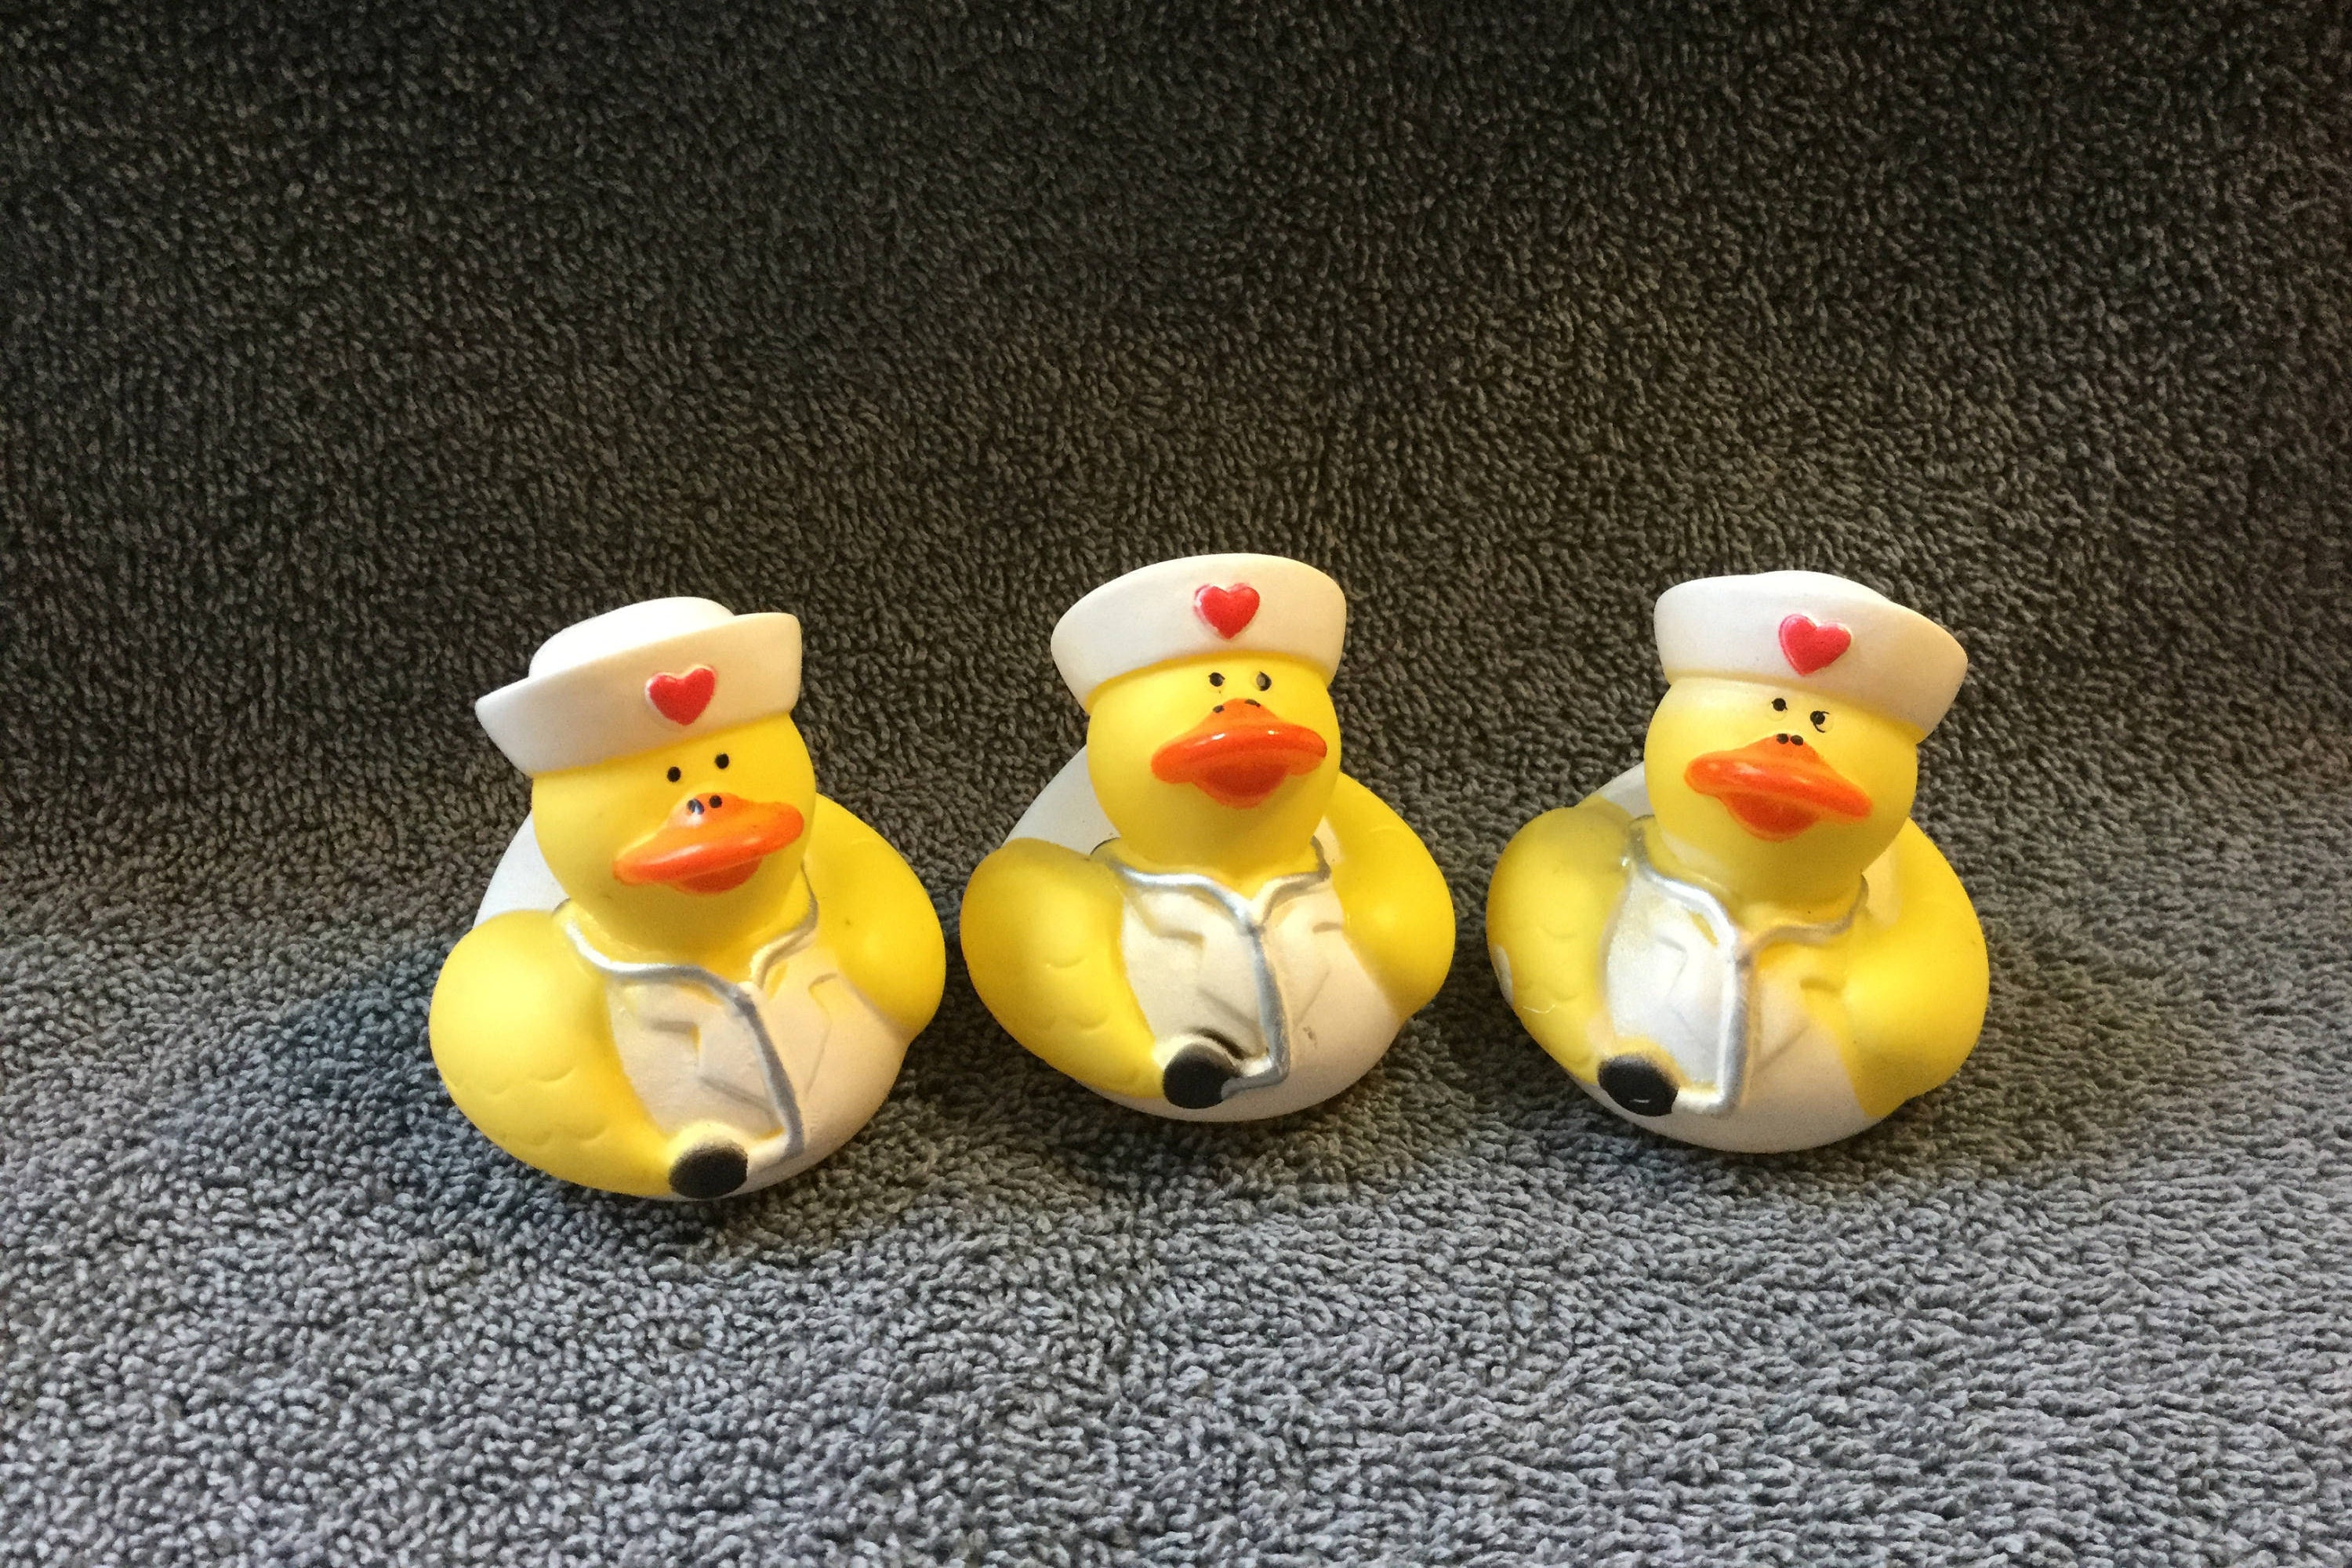 Nurse Rubber Ducks 3 party favors/cupcake toppers party